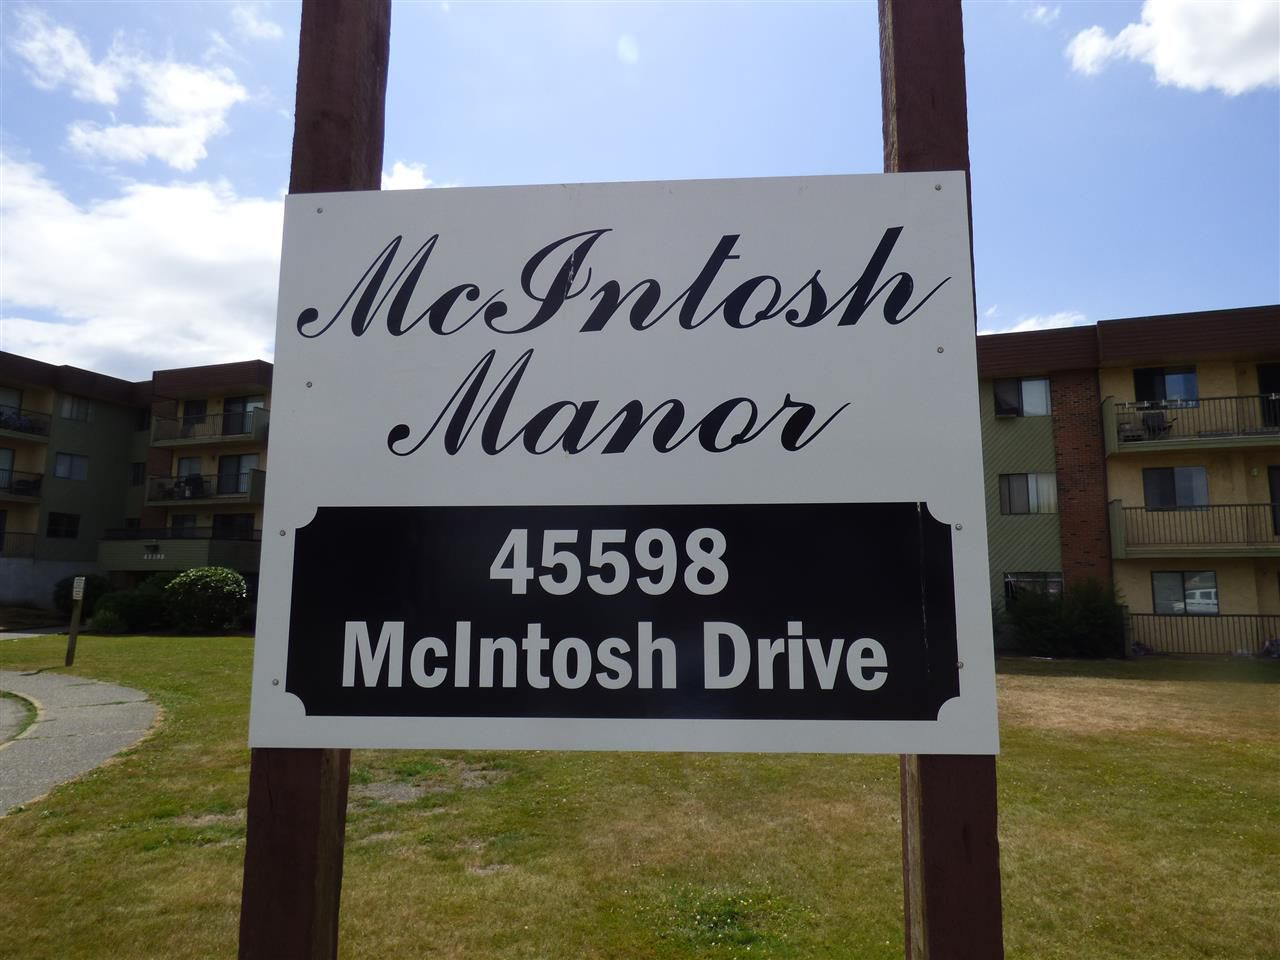 """Main Photo: 109 45598 MCINTOSH Drive in Chilliwack: Chilliwack W Young-Well Condo for sale in """"McIntosh Manor"""" : MLS®# R2188056"""